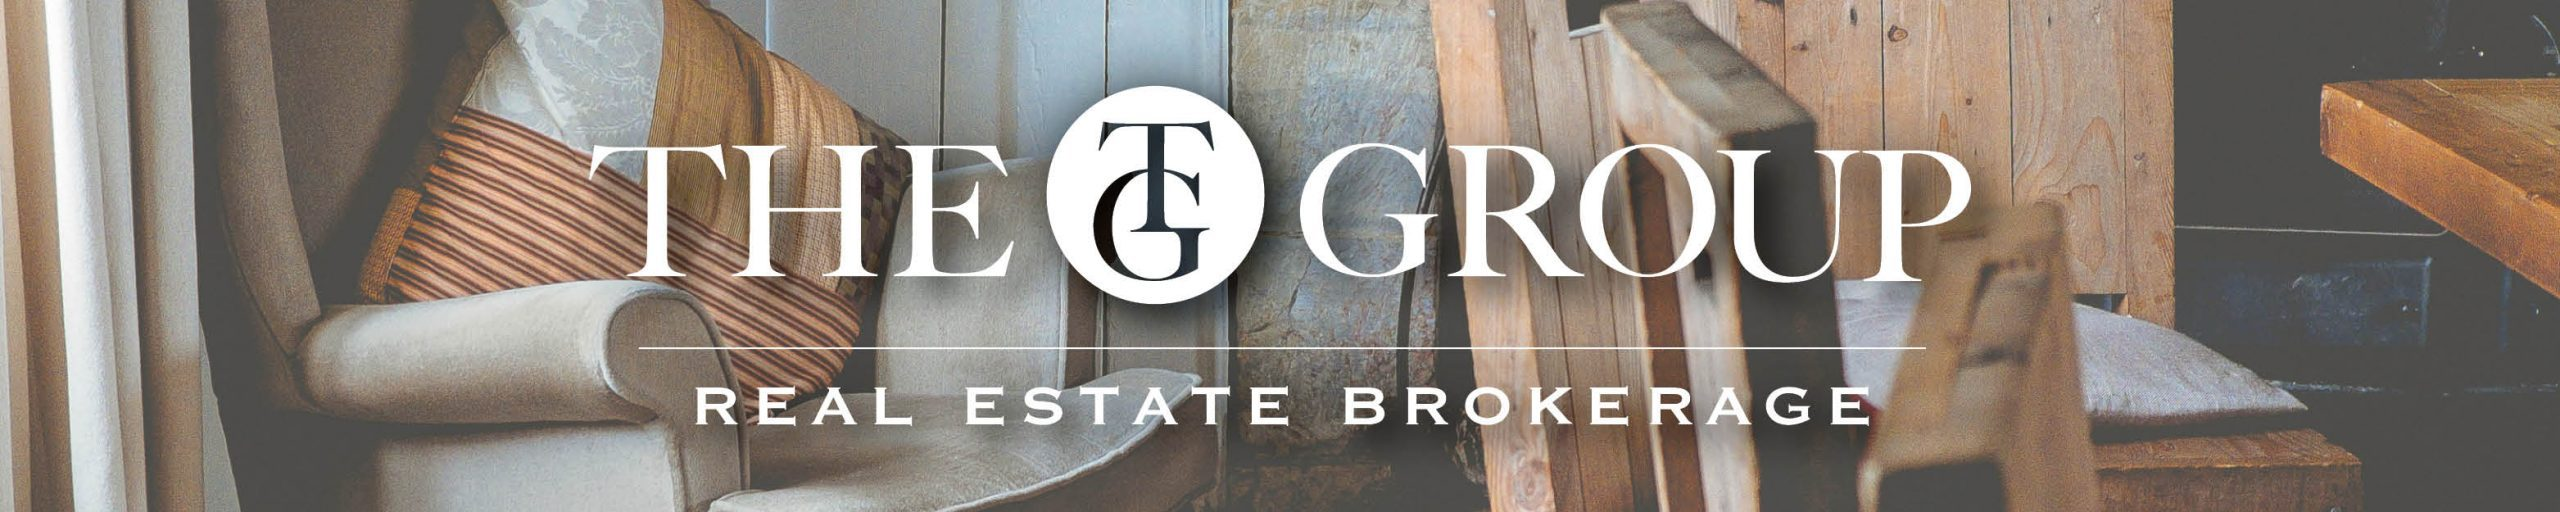 The Group Real Estate Brokerage ad